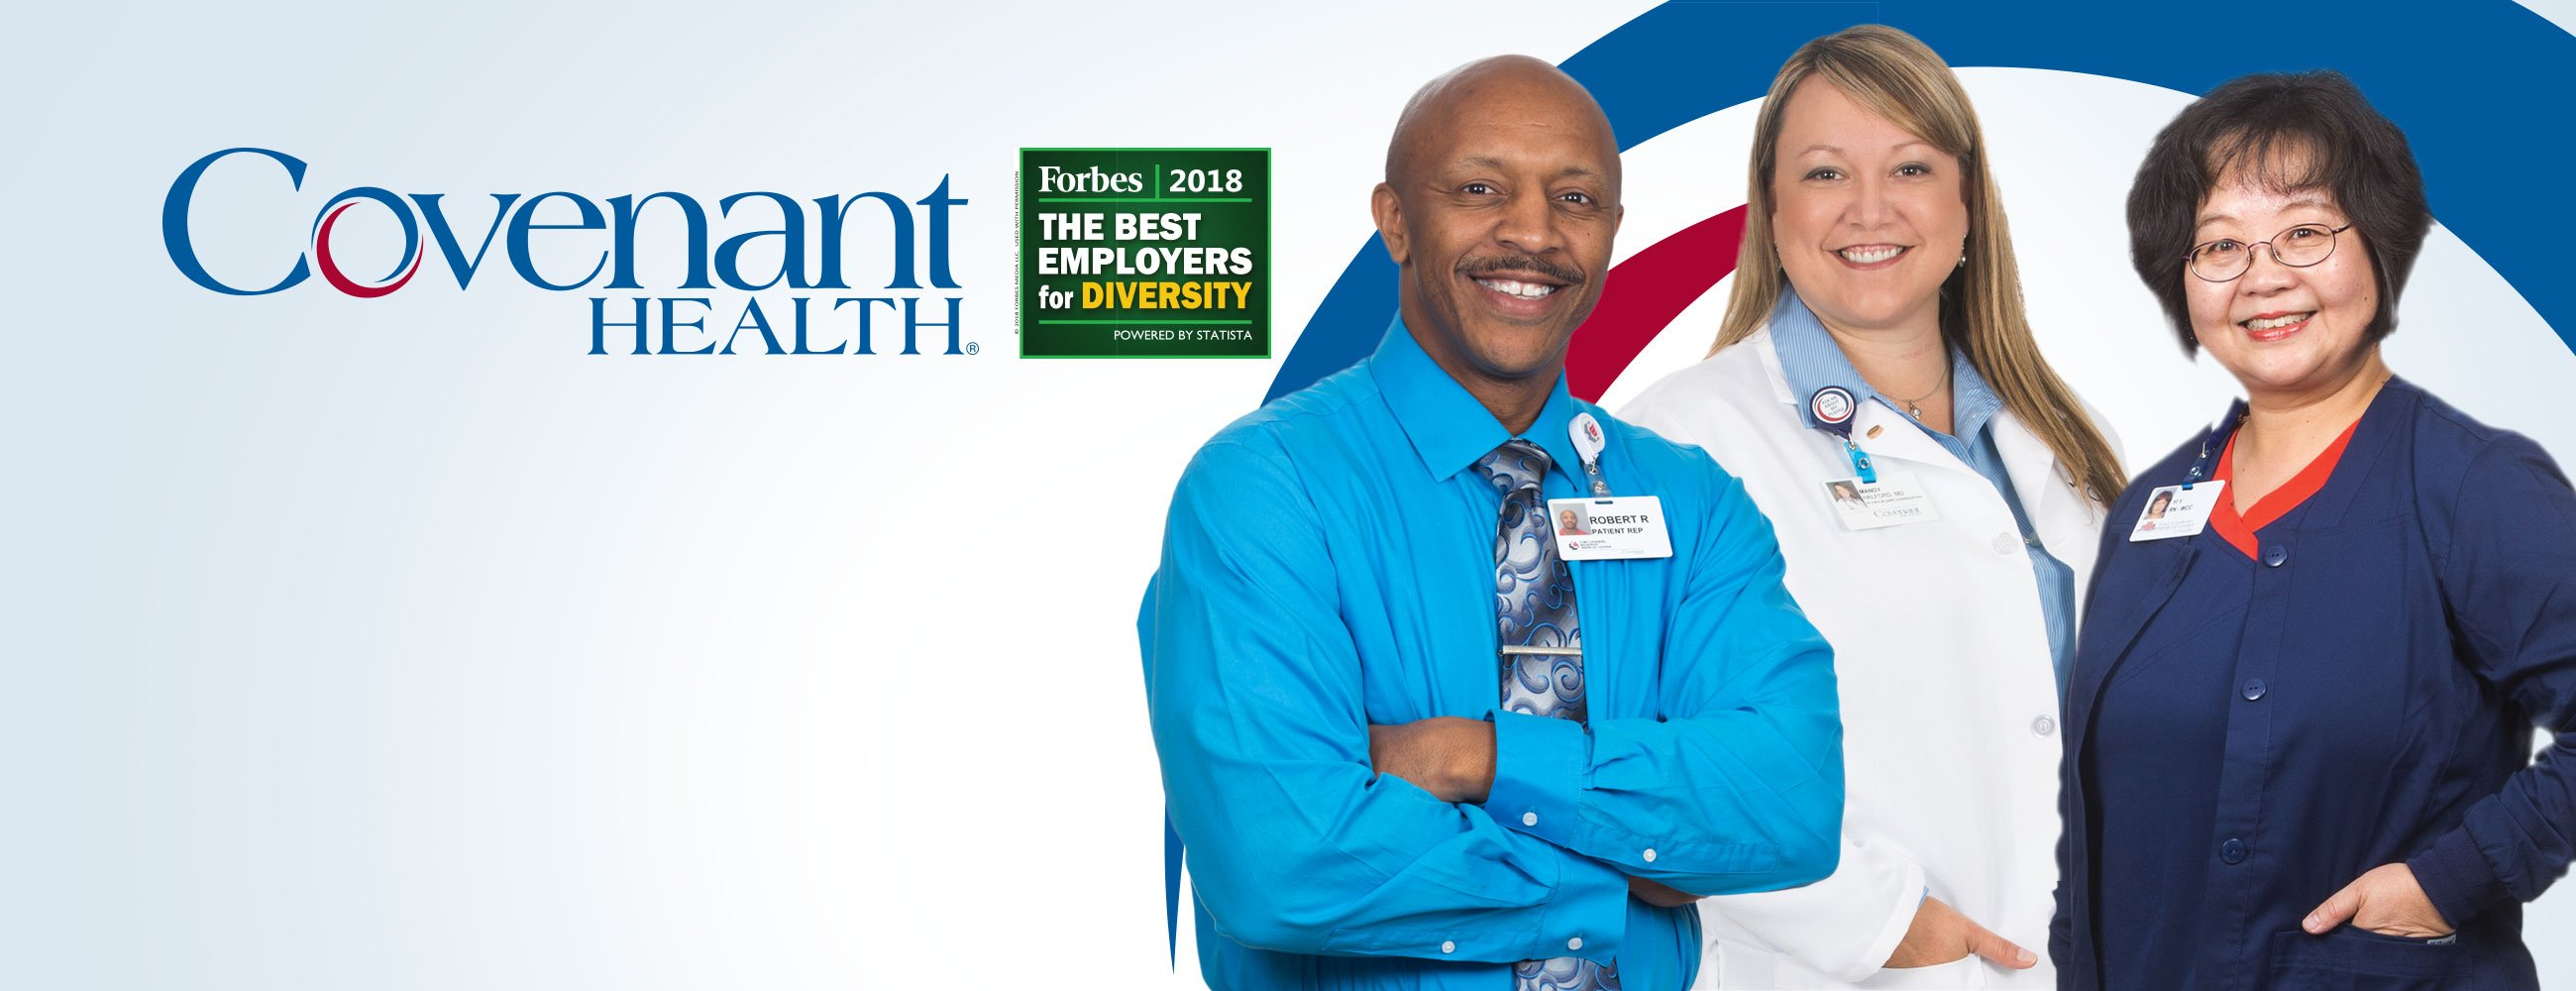 Covenant Health Named to Forbes List of America's Best Employers for Diversity